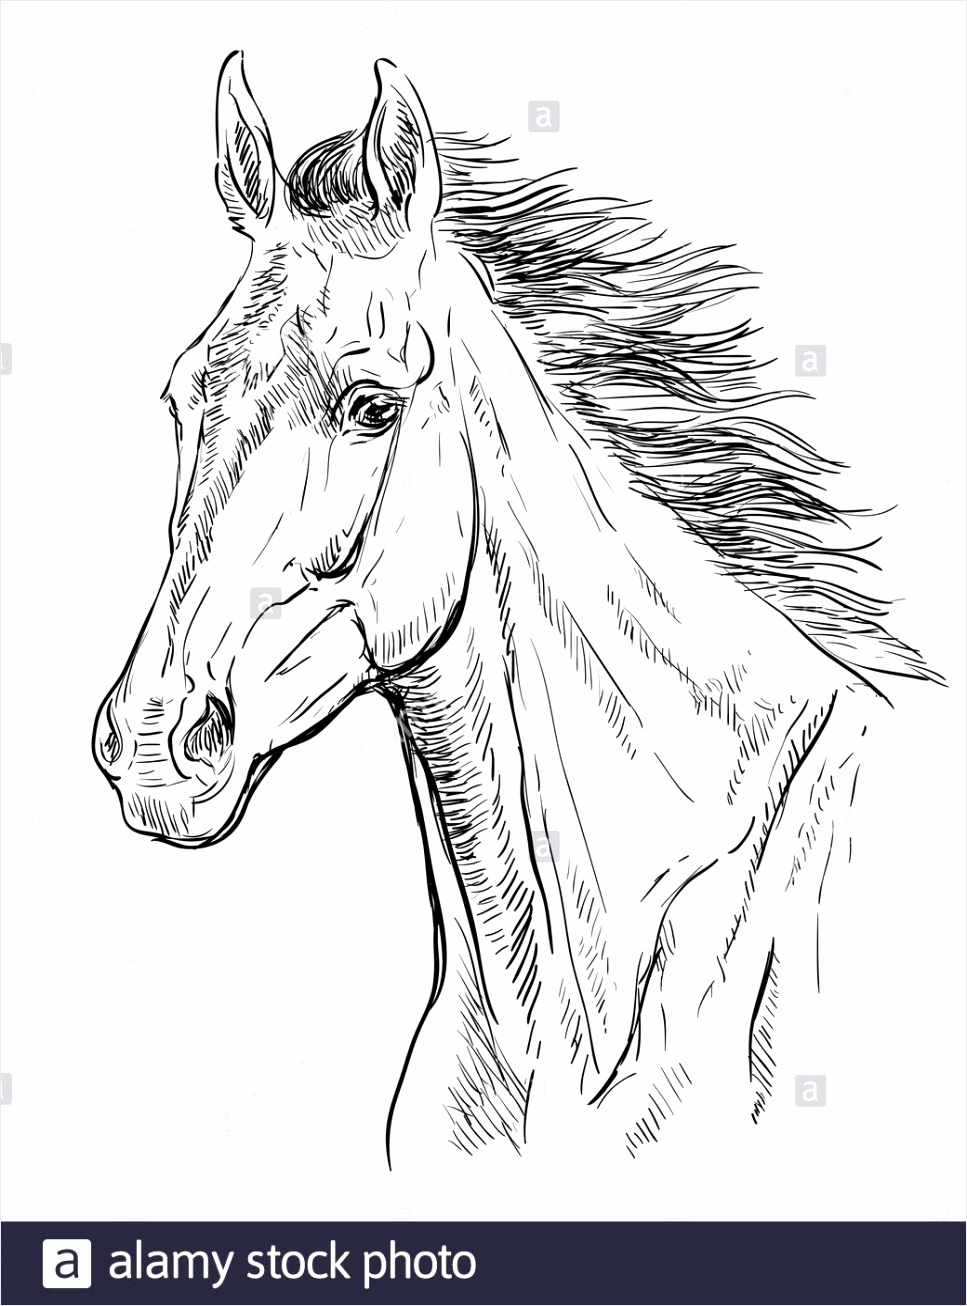 hand drawing horse portrait horse head with long mane in black color isolated on white background vector hand drawing illustration retro style port 2ADGG1N yrwoy